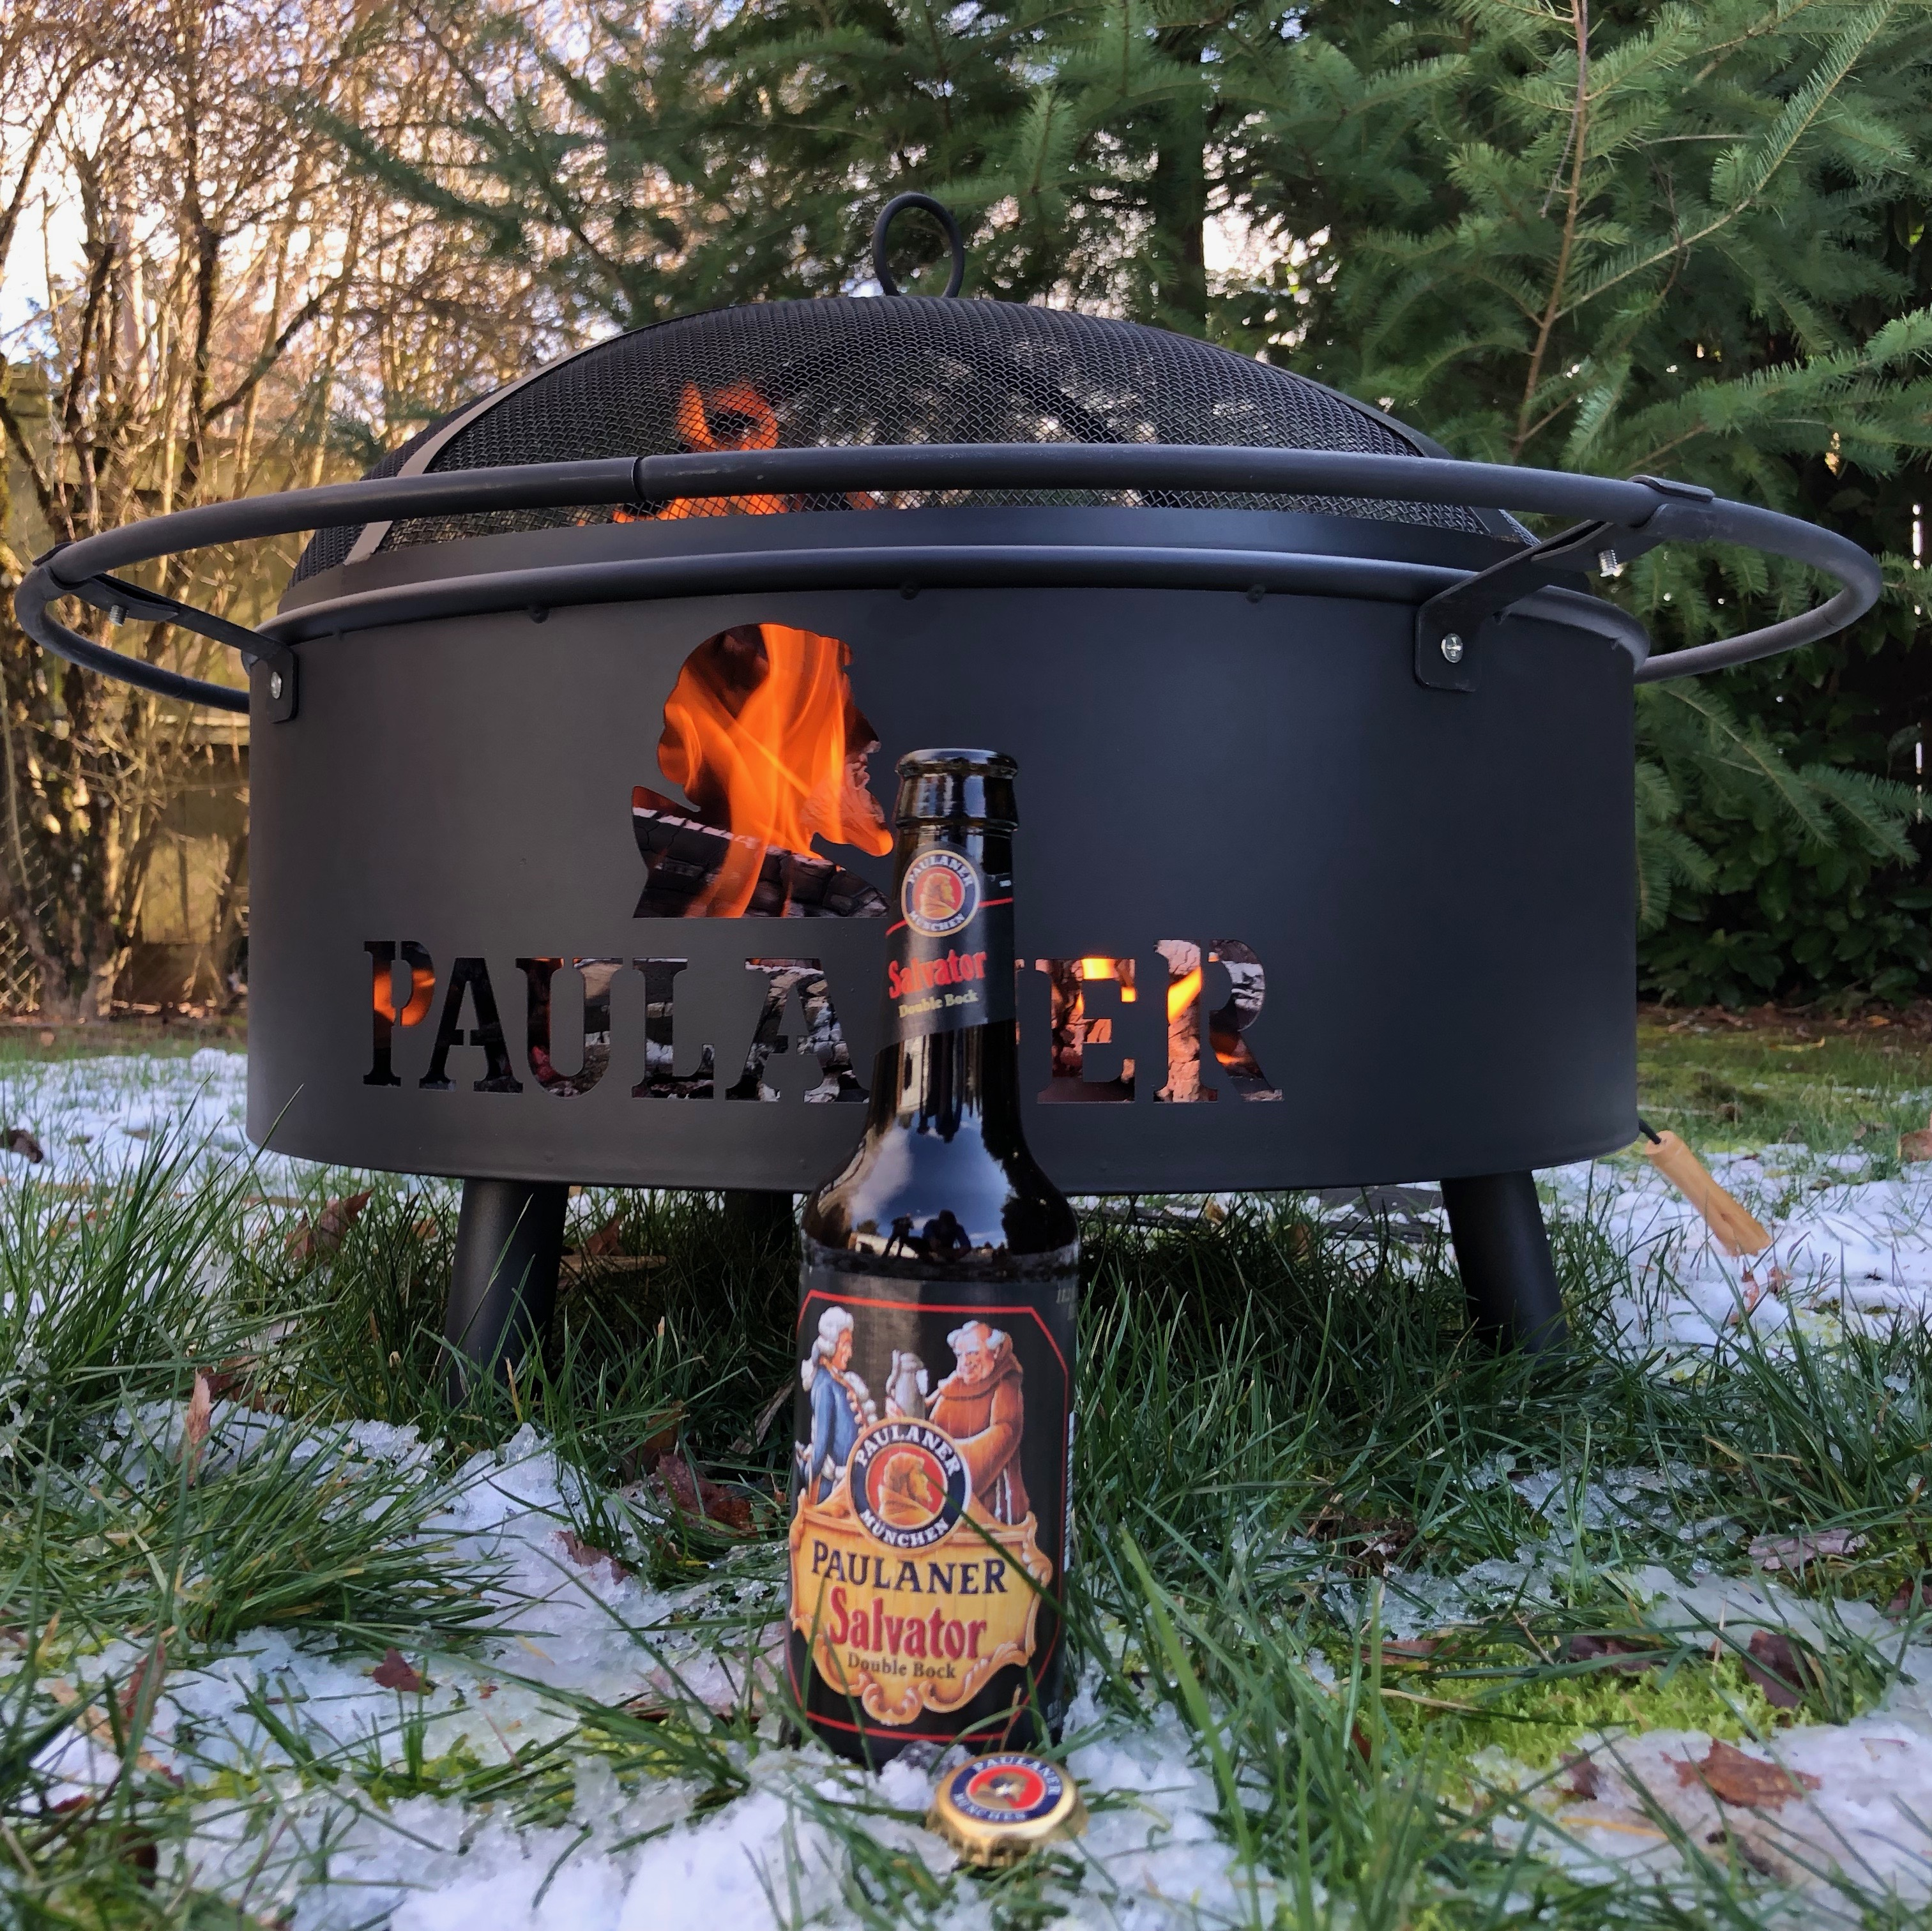 A bottle of Paulaner Salvator Double Bock and a Paulaner Fire Pit.